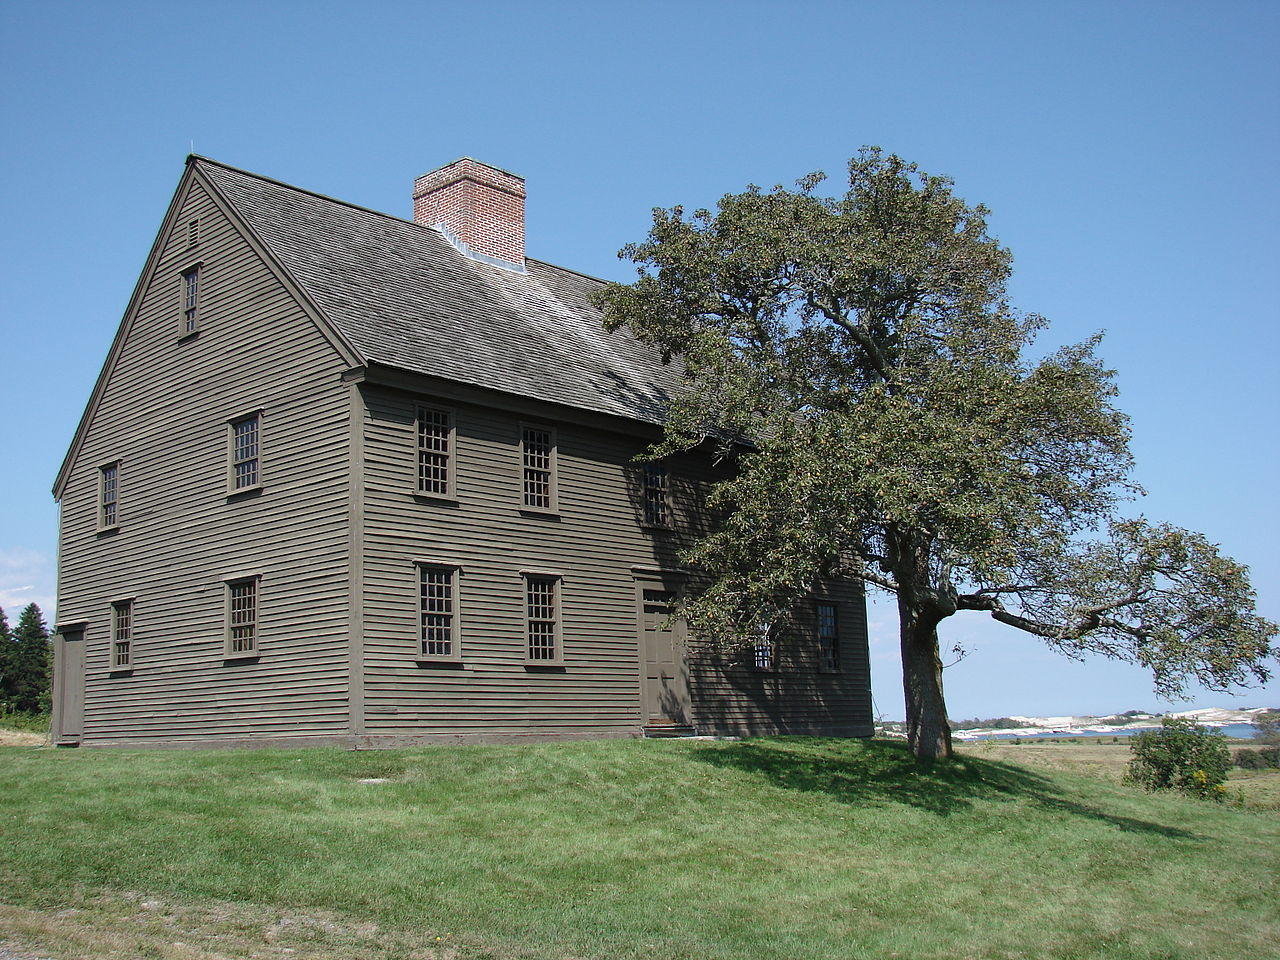 The Choate house on hog island